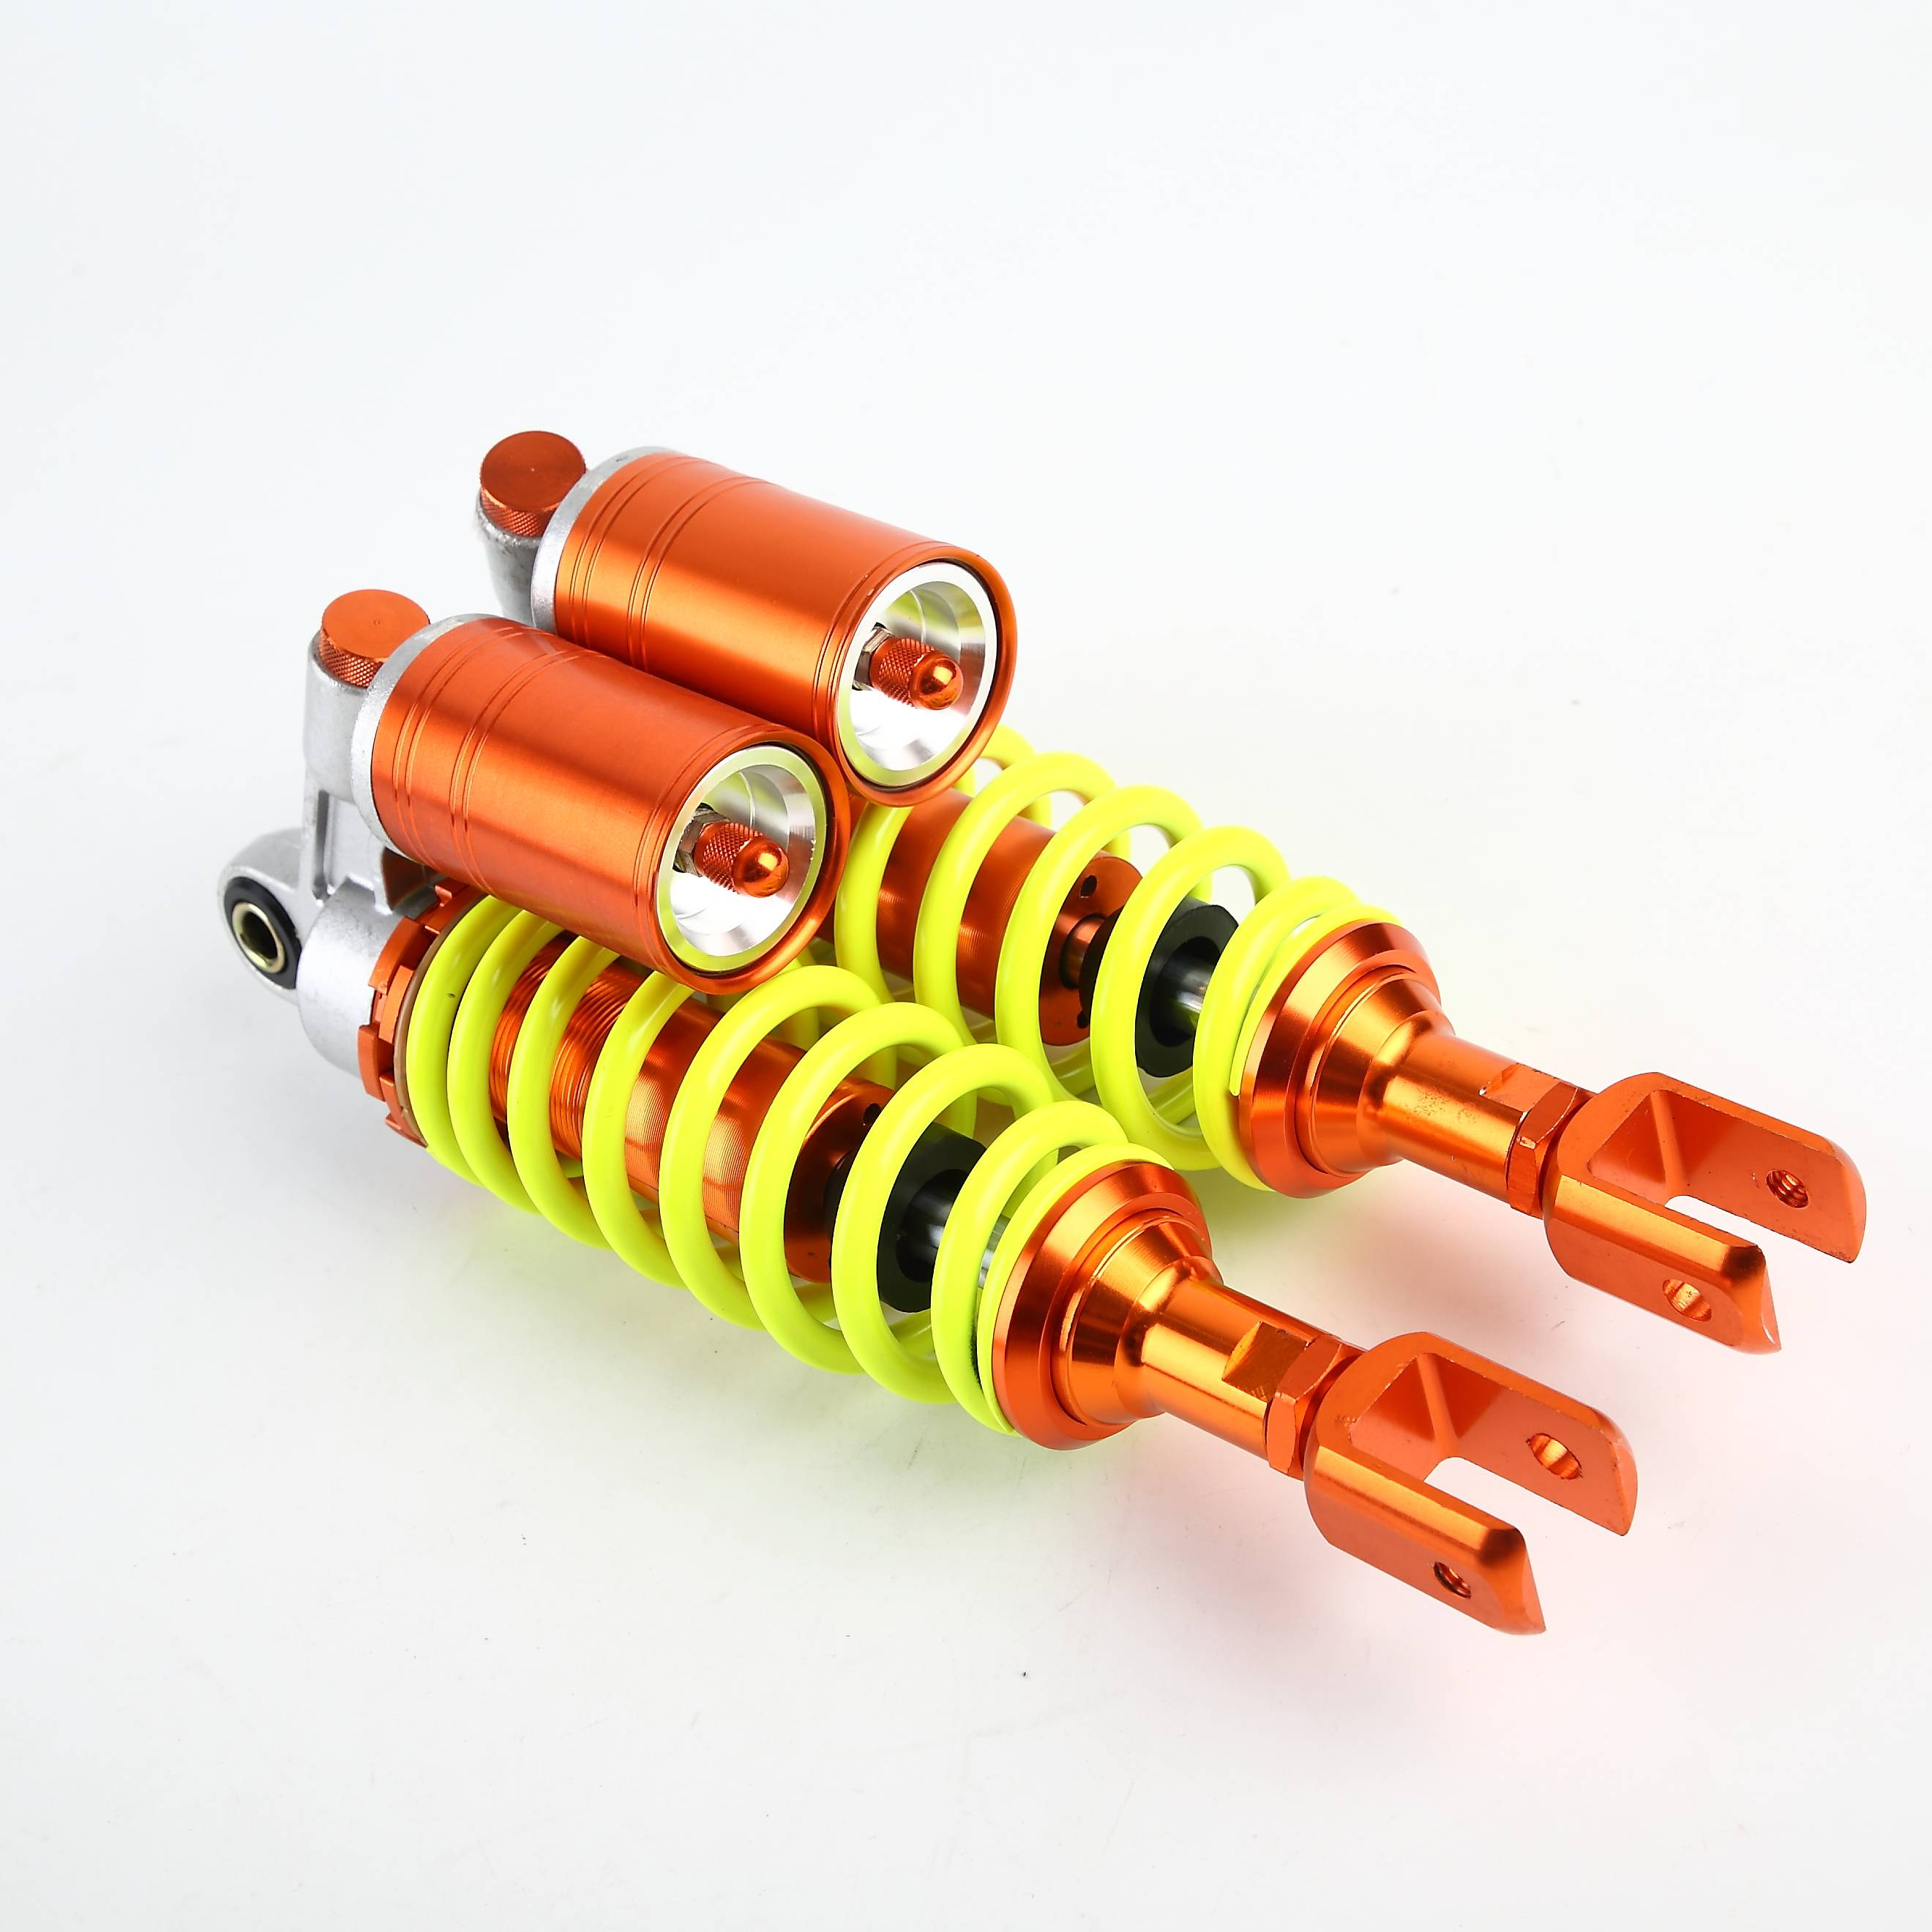 290mm adjustable rear shock suspension for scooter motorcycle ATV quads